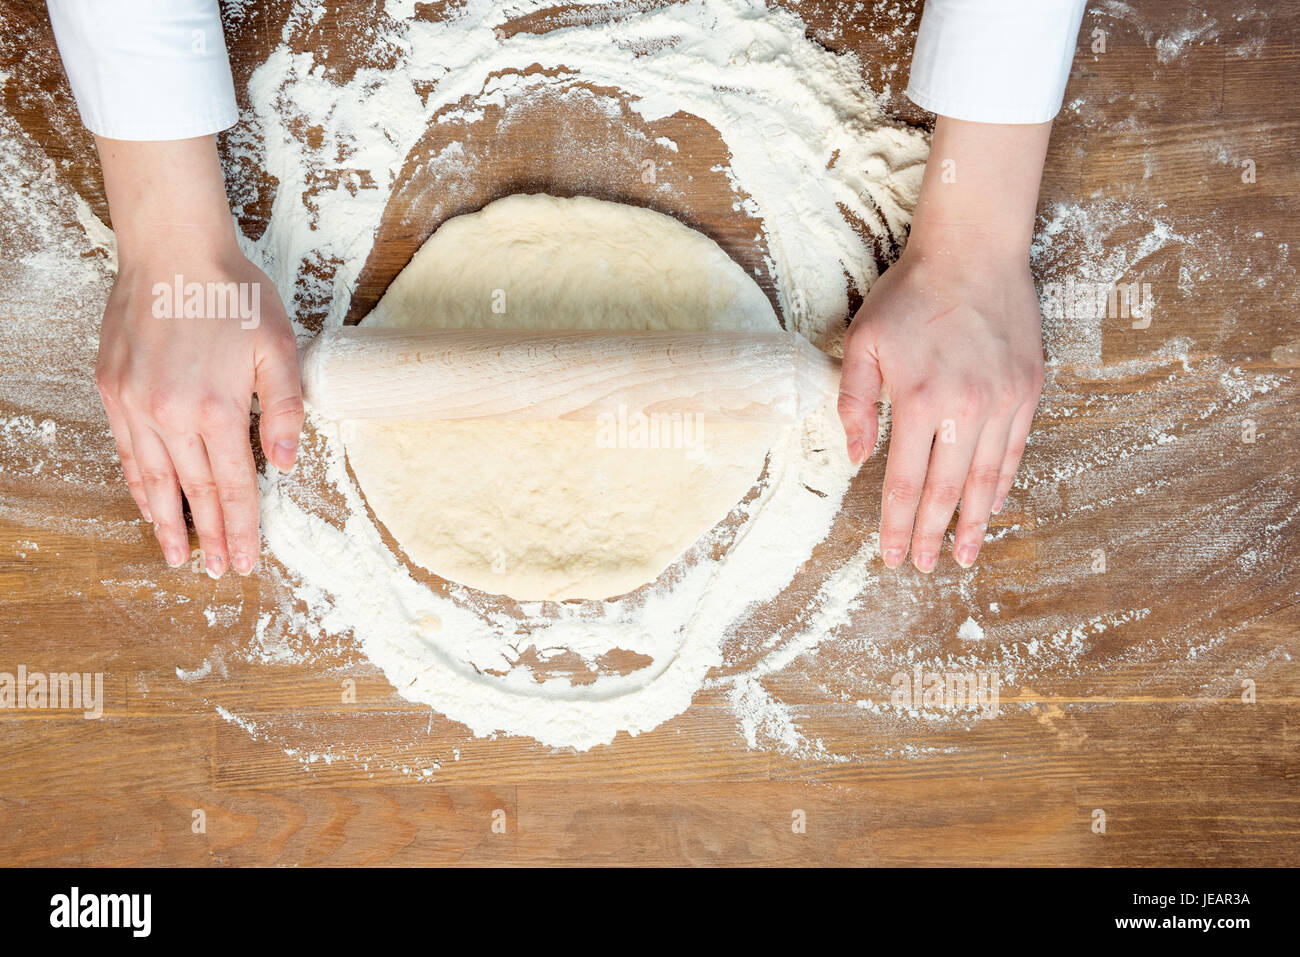 top view of child making pizza dough on wooden tabletop - Stock Image